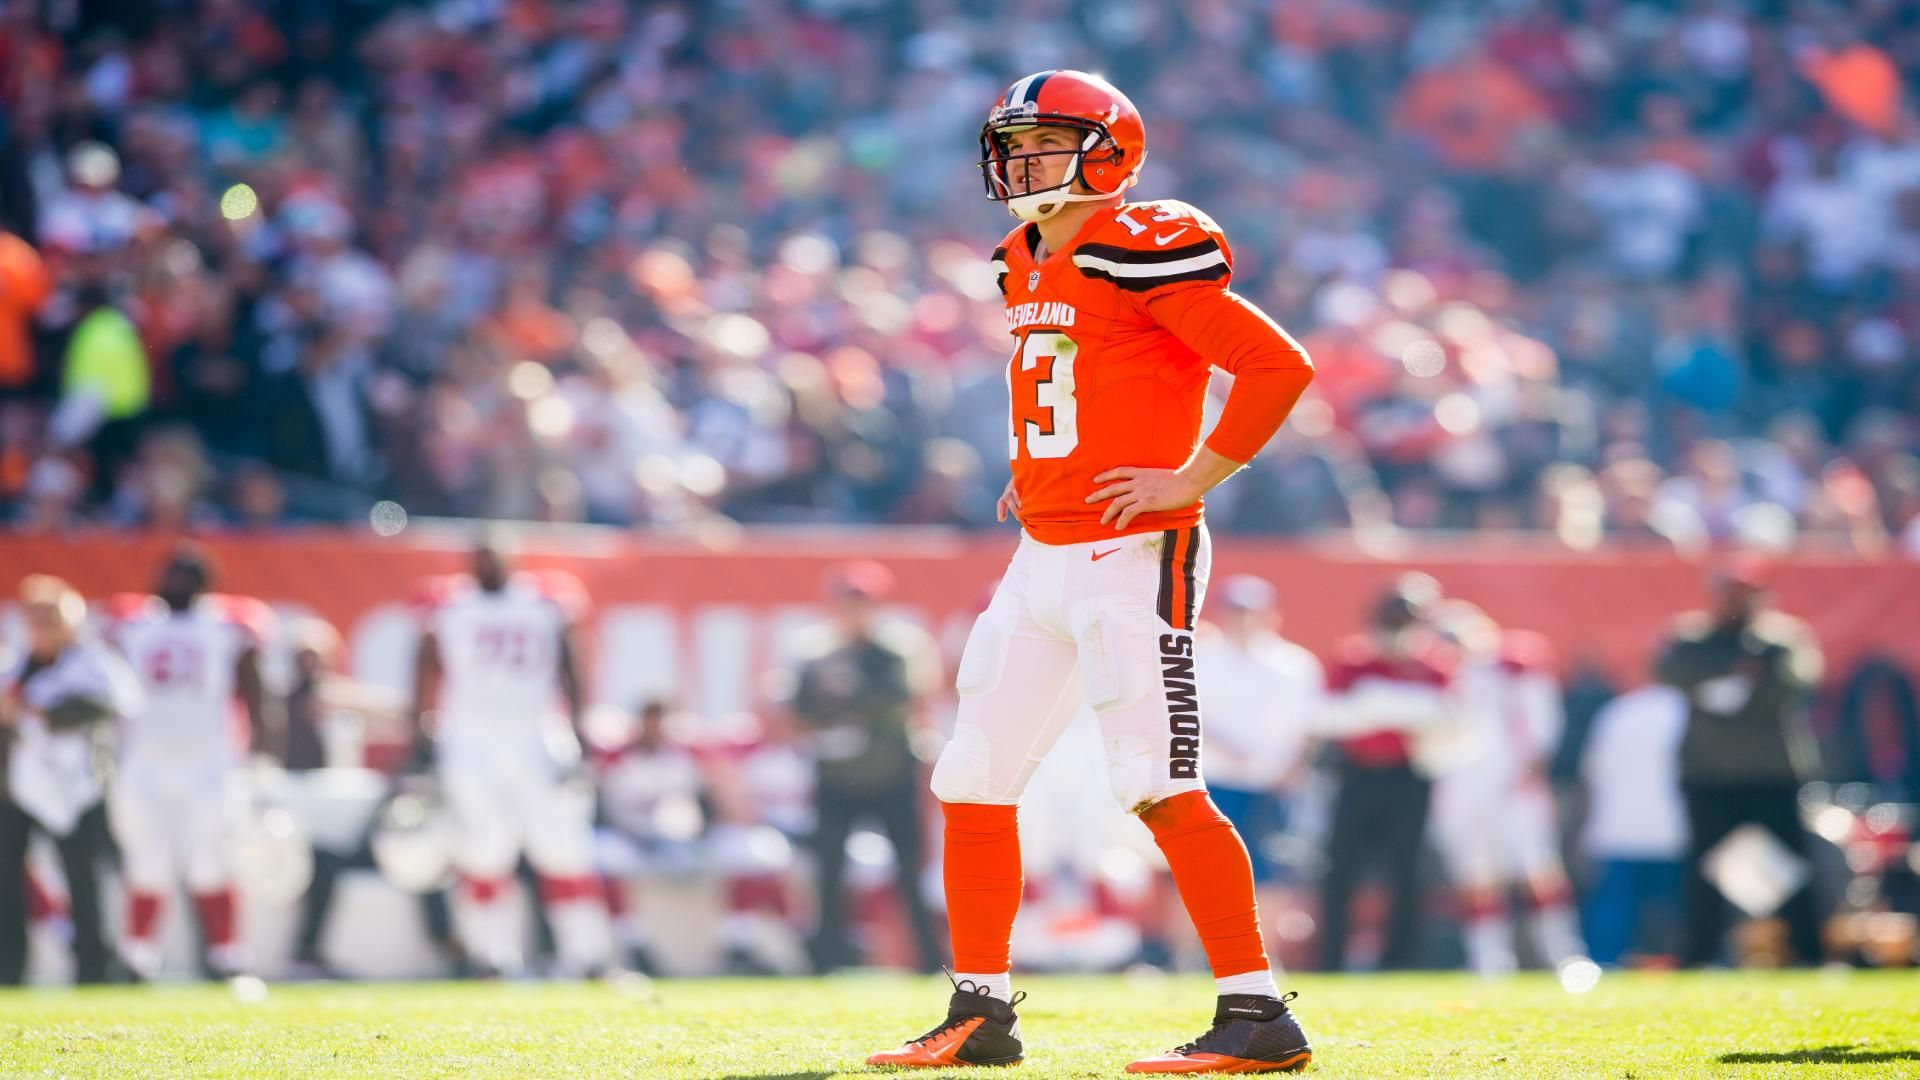 https://secure.espncdn.com/combiner/i?img=/media/motion/2015/1110/dm_151110_nfl_mccown_manziel_news/dm_151110_nfl_mccown_manziel_news.jpg